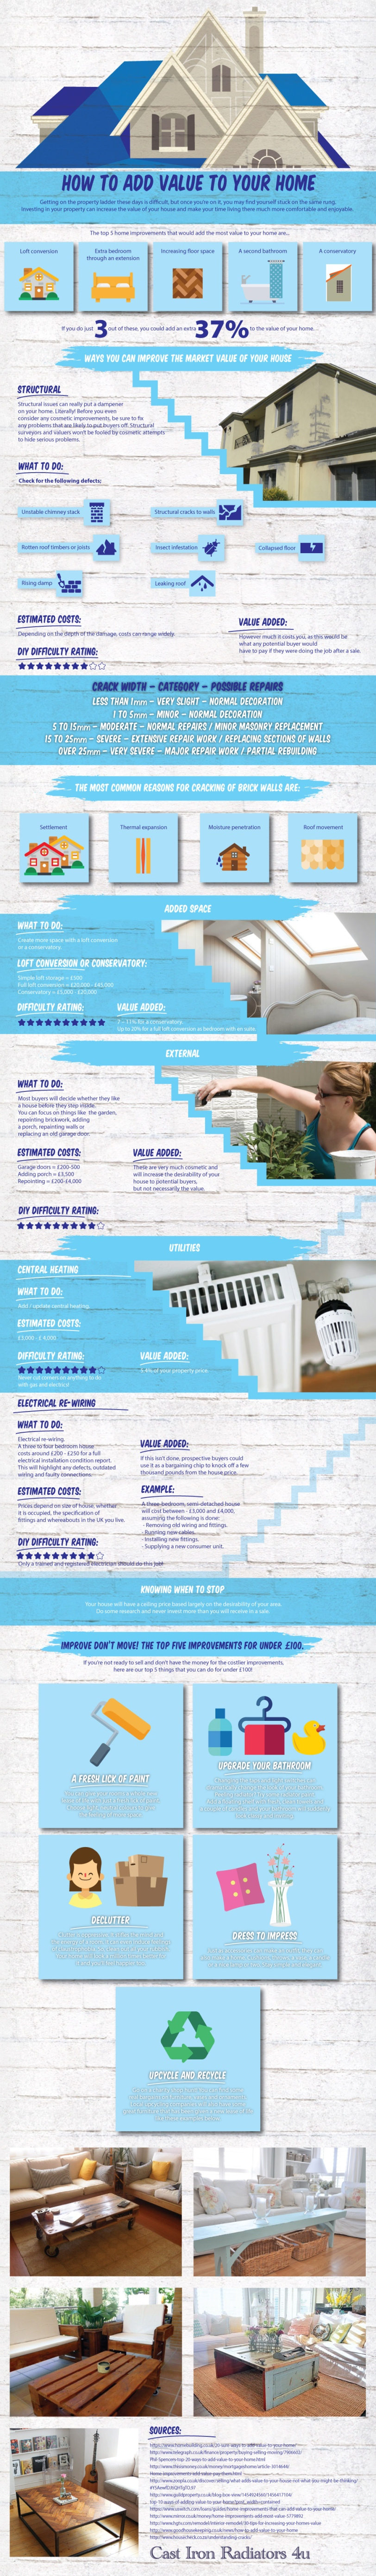 How to Add Value to Your Home by Castironradiators4u.co.uk